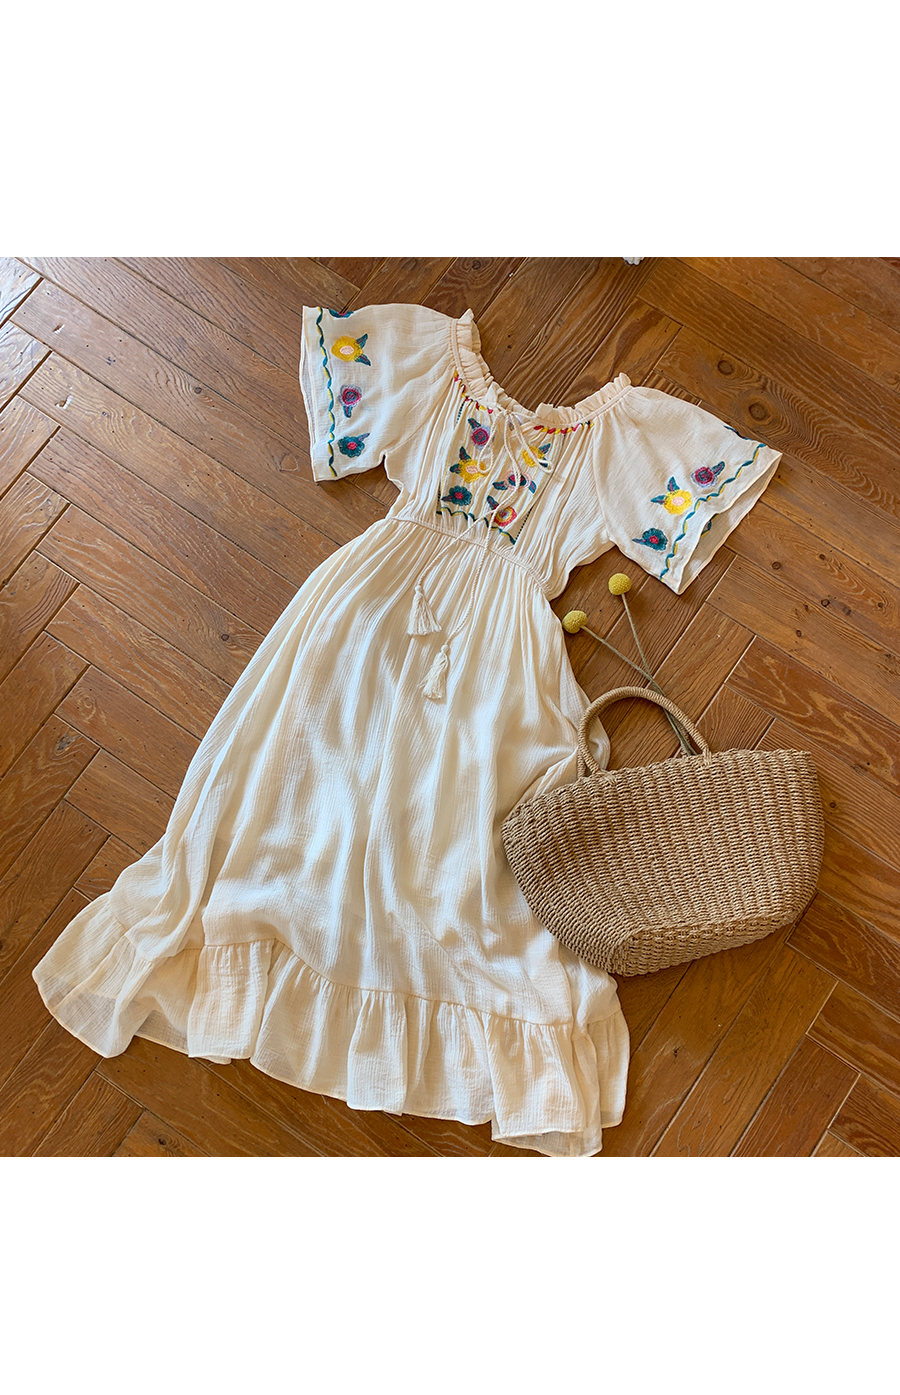 Innocent girl embroidery dress